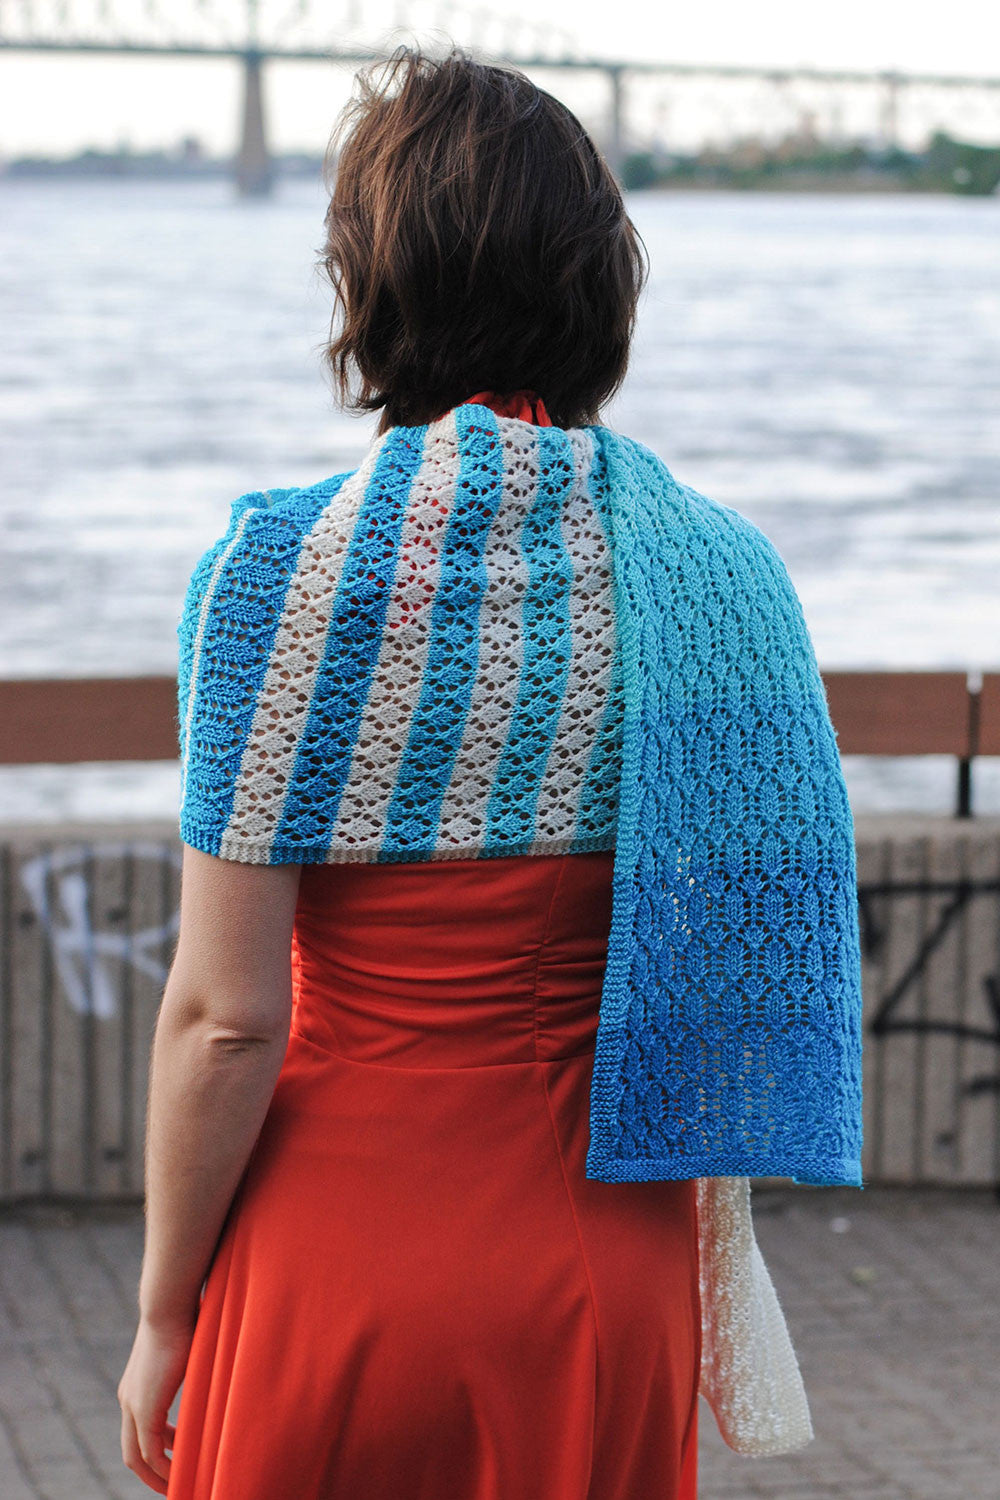 Devaneio gradient lace knitting pattern